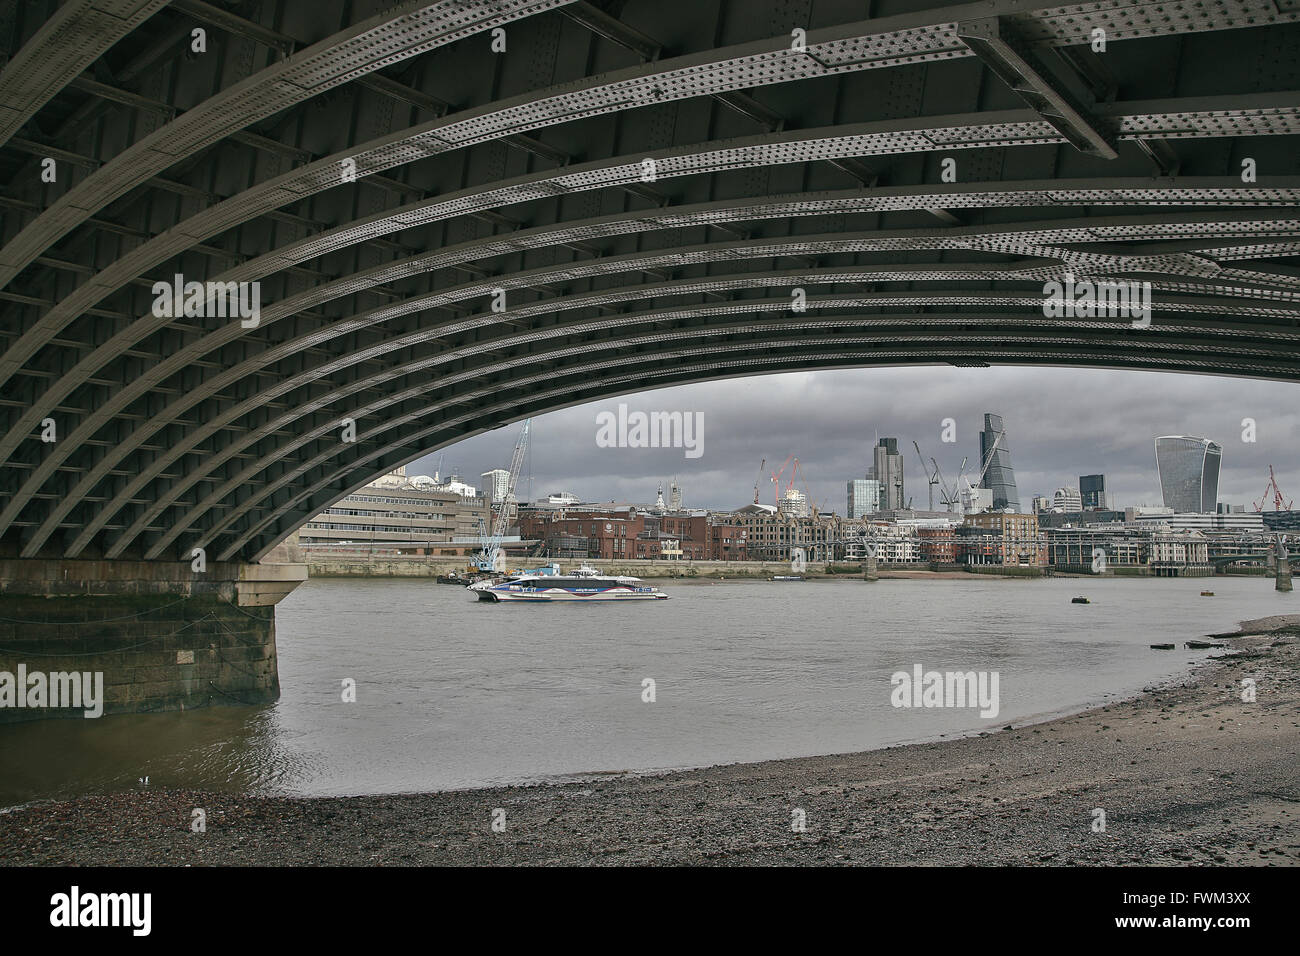 City Buildings Seen From Below Blackfriars Bridge Over Thames River - Stock Image